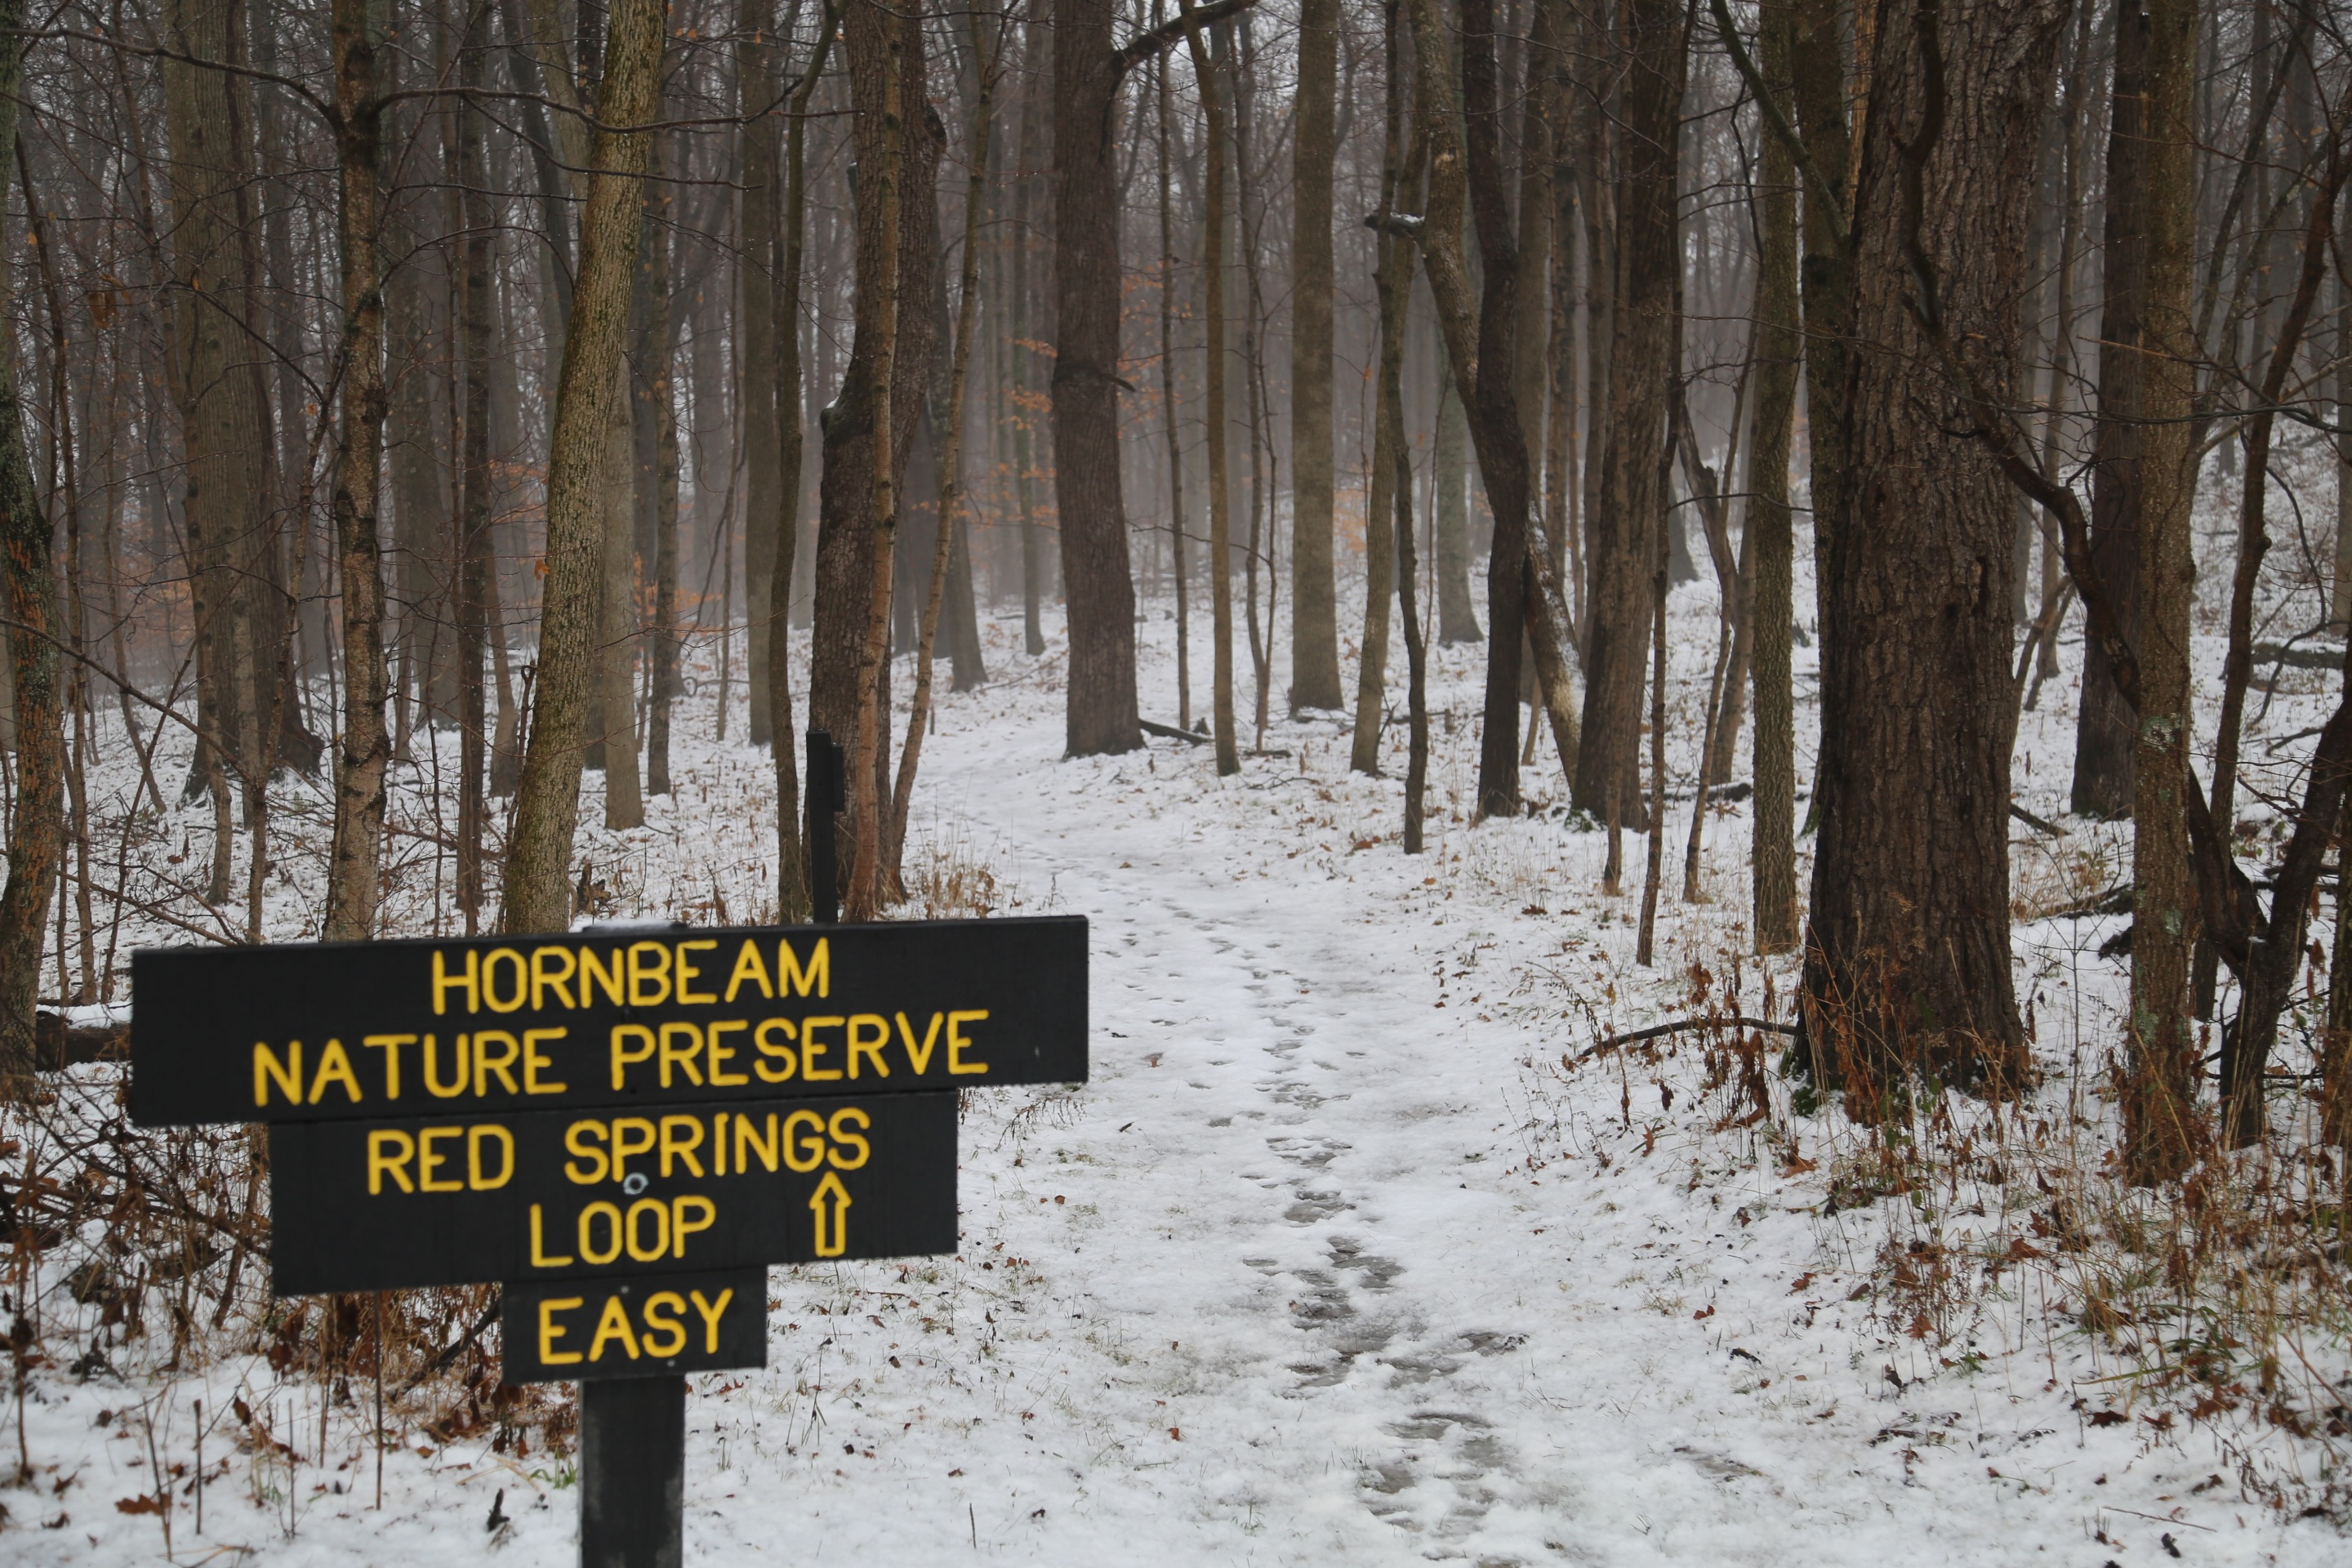 The Hornbeam Nature Preserve is within Whitewater Memorial State Park.